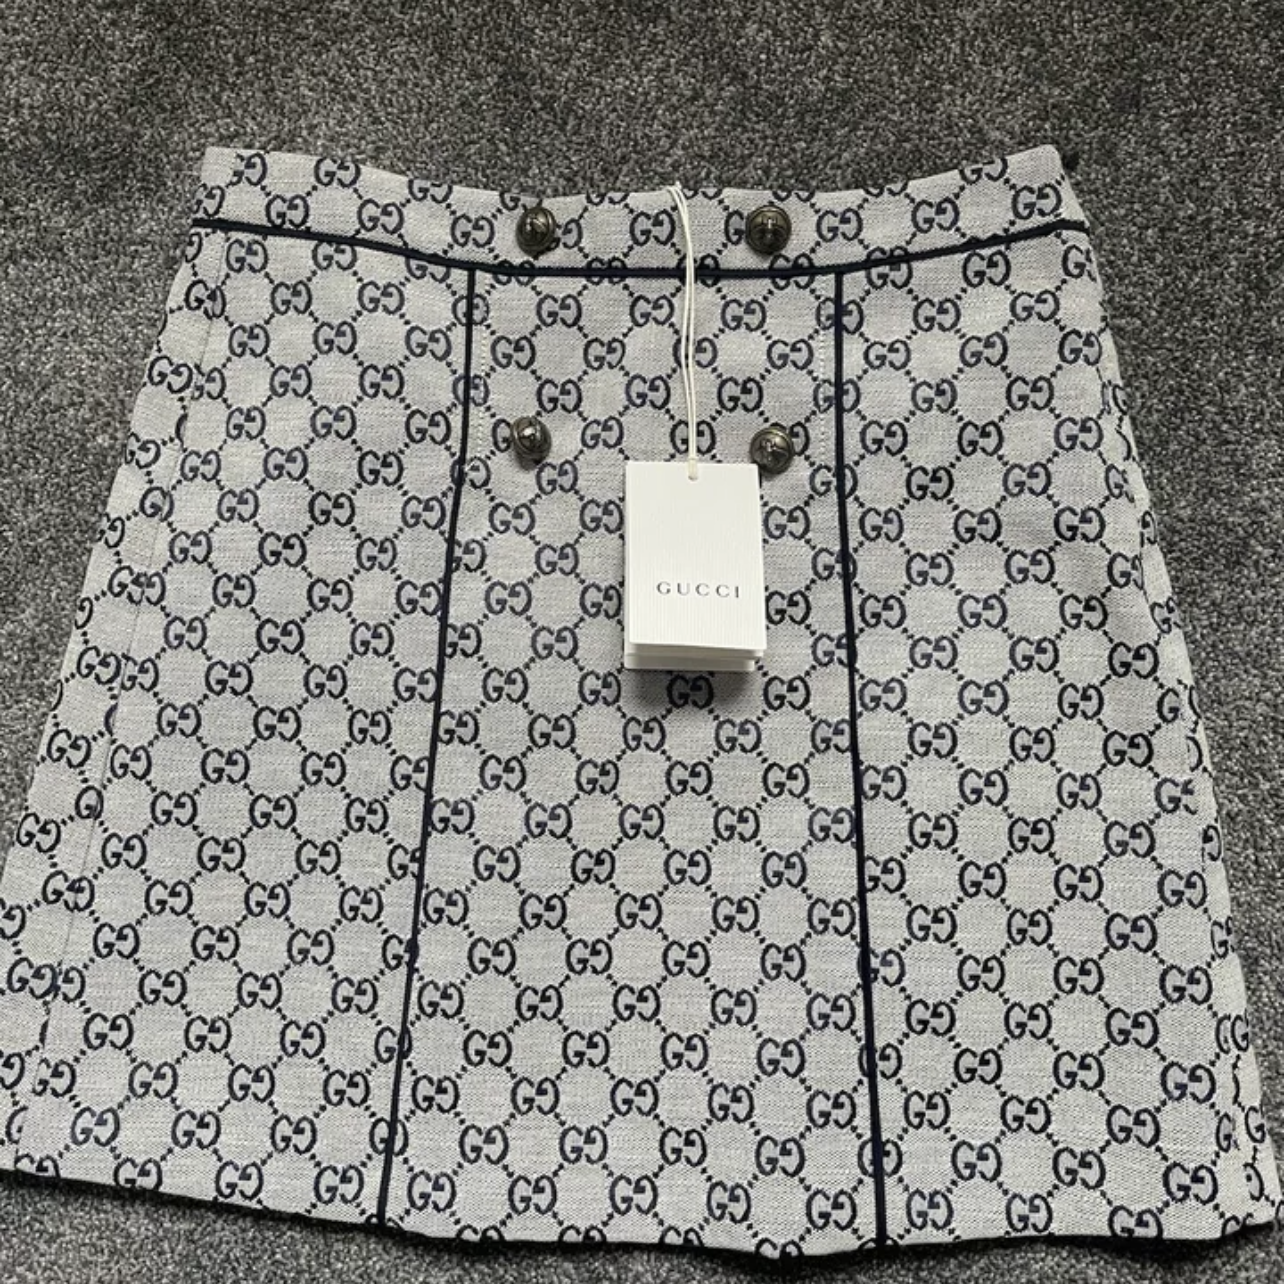 Gucci embroidered skirt SIZE 12 KIDS FITS A SIZE 8 WOMEN Gucci3